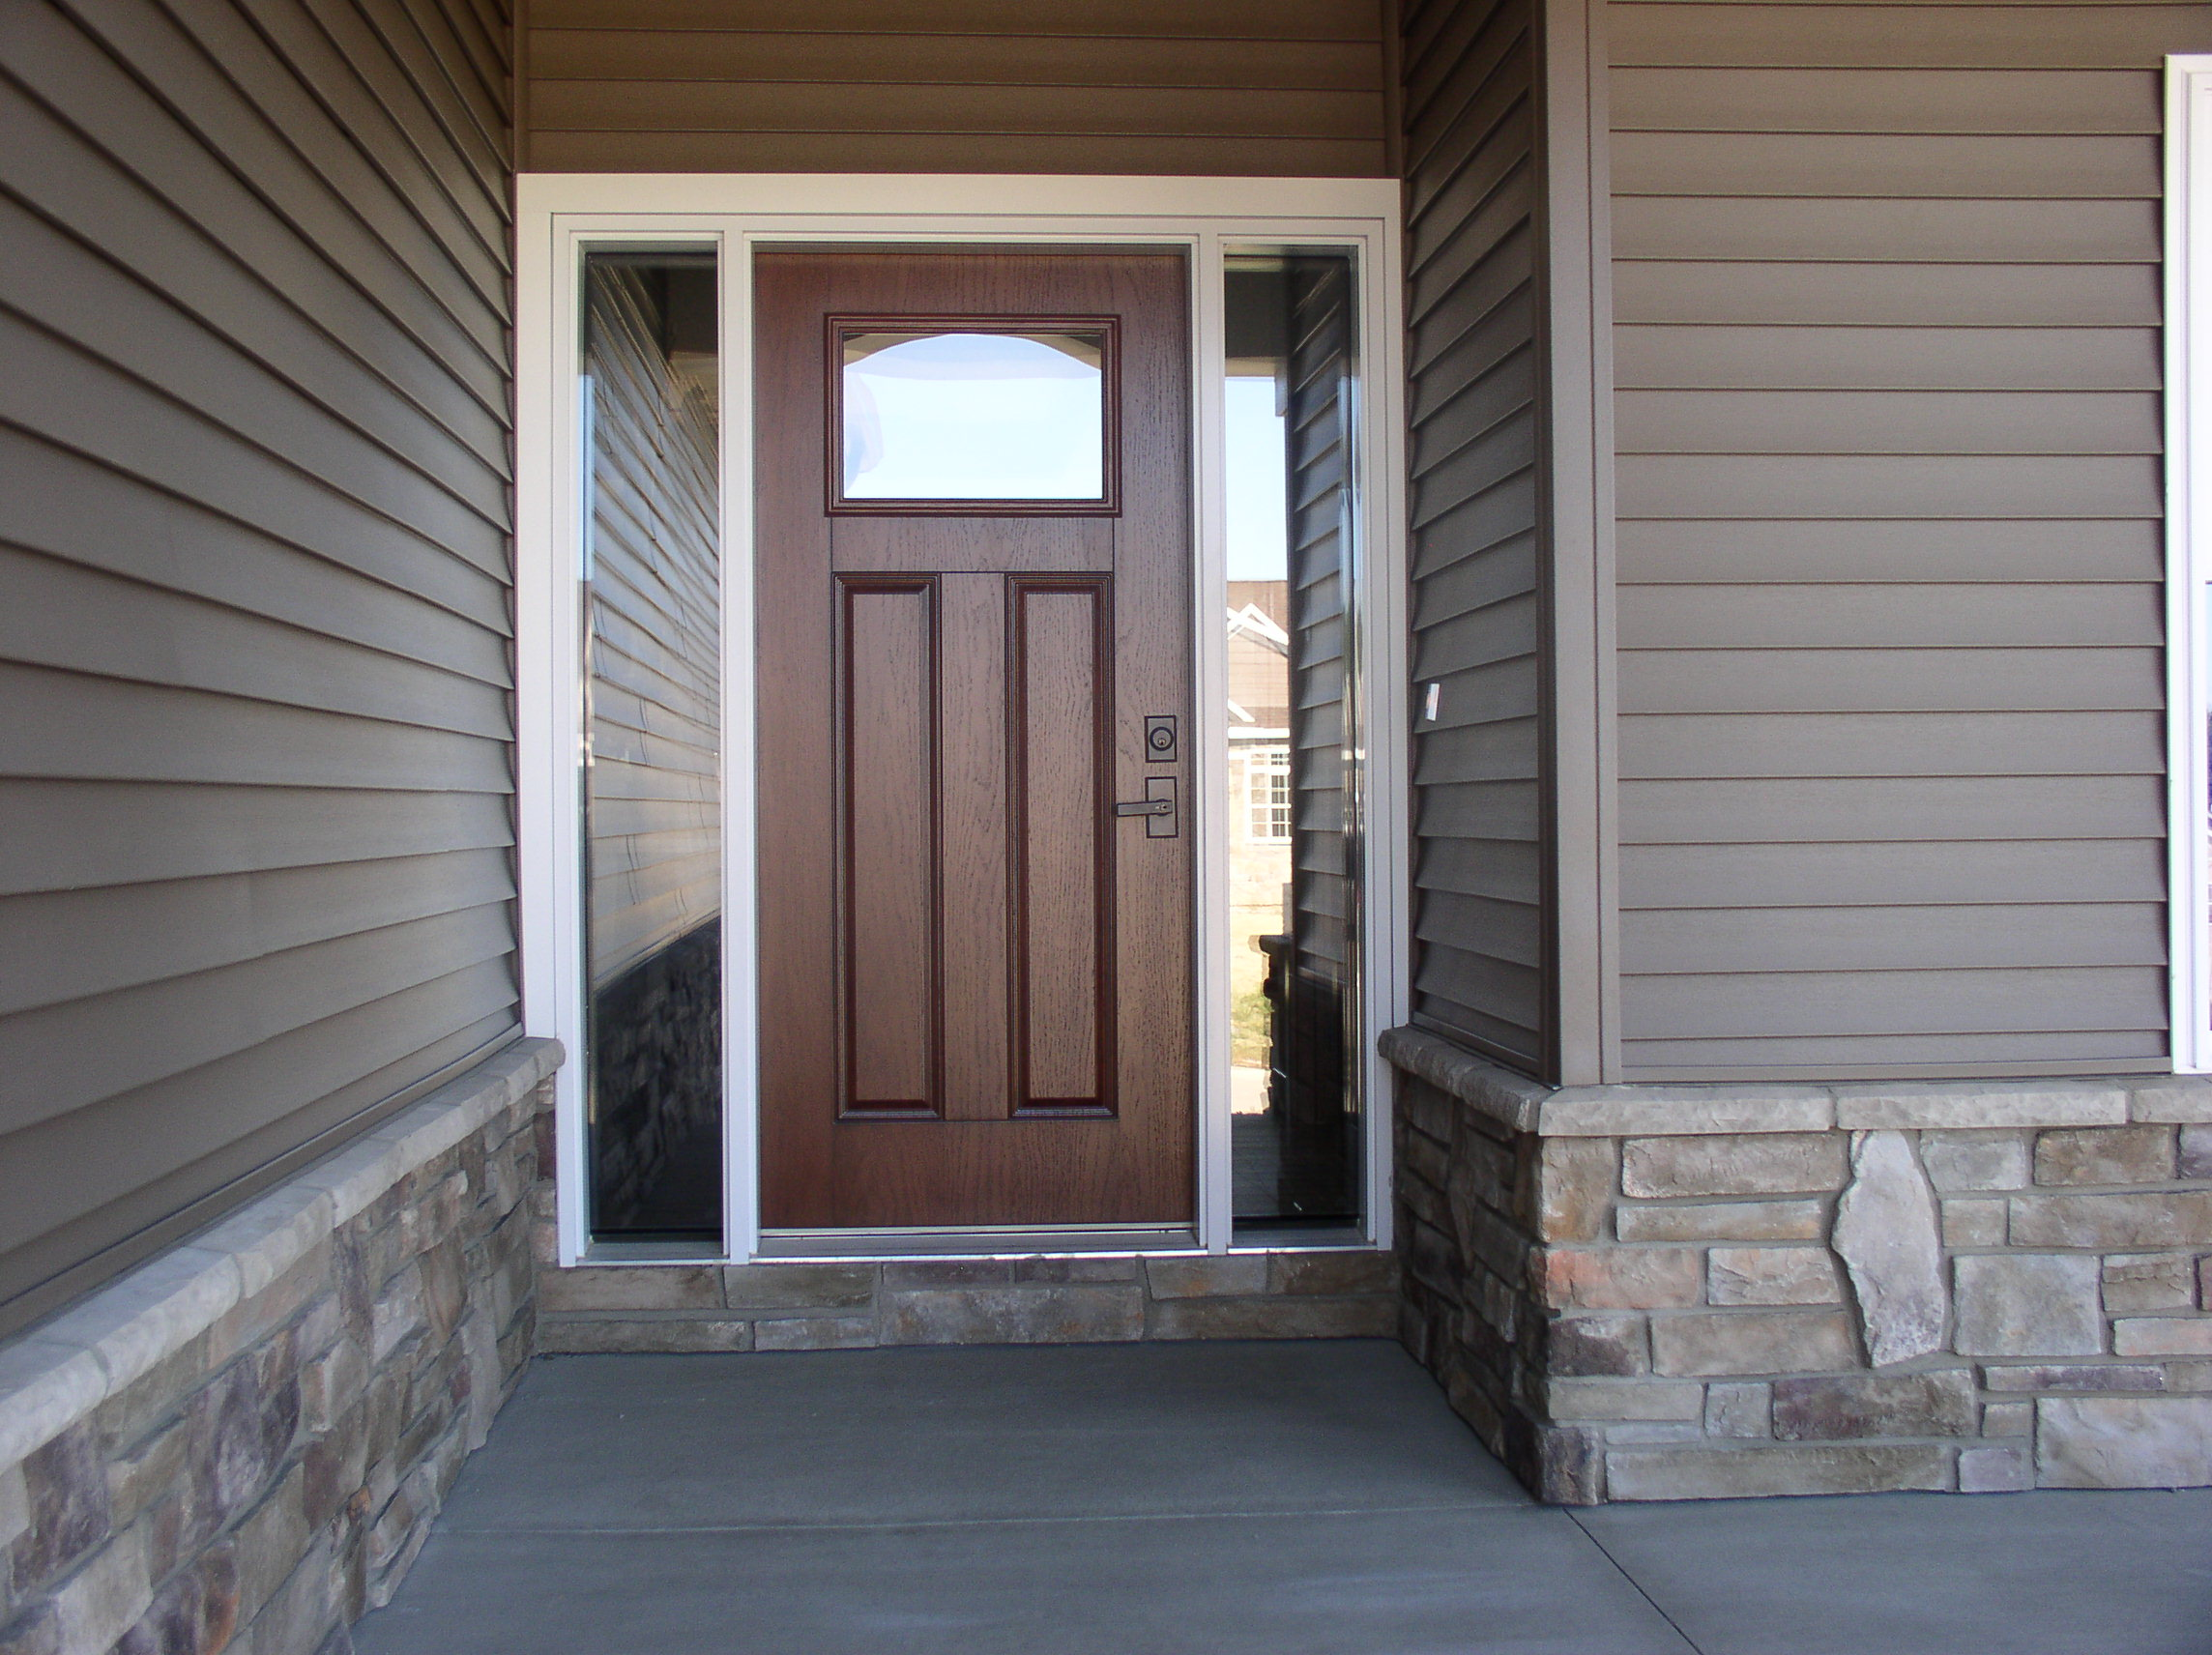 Exterior doors windows fondare finish construction for Exterior doors and windows